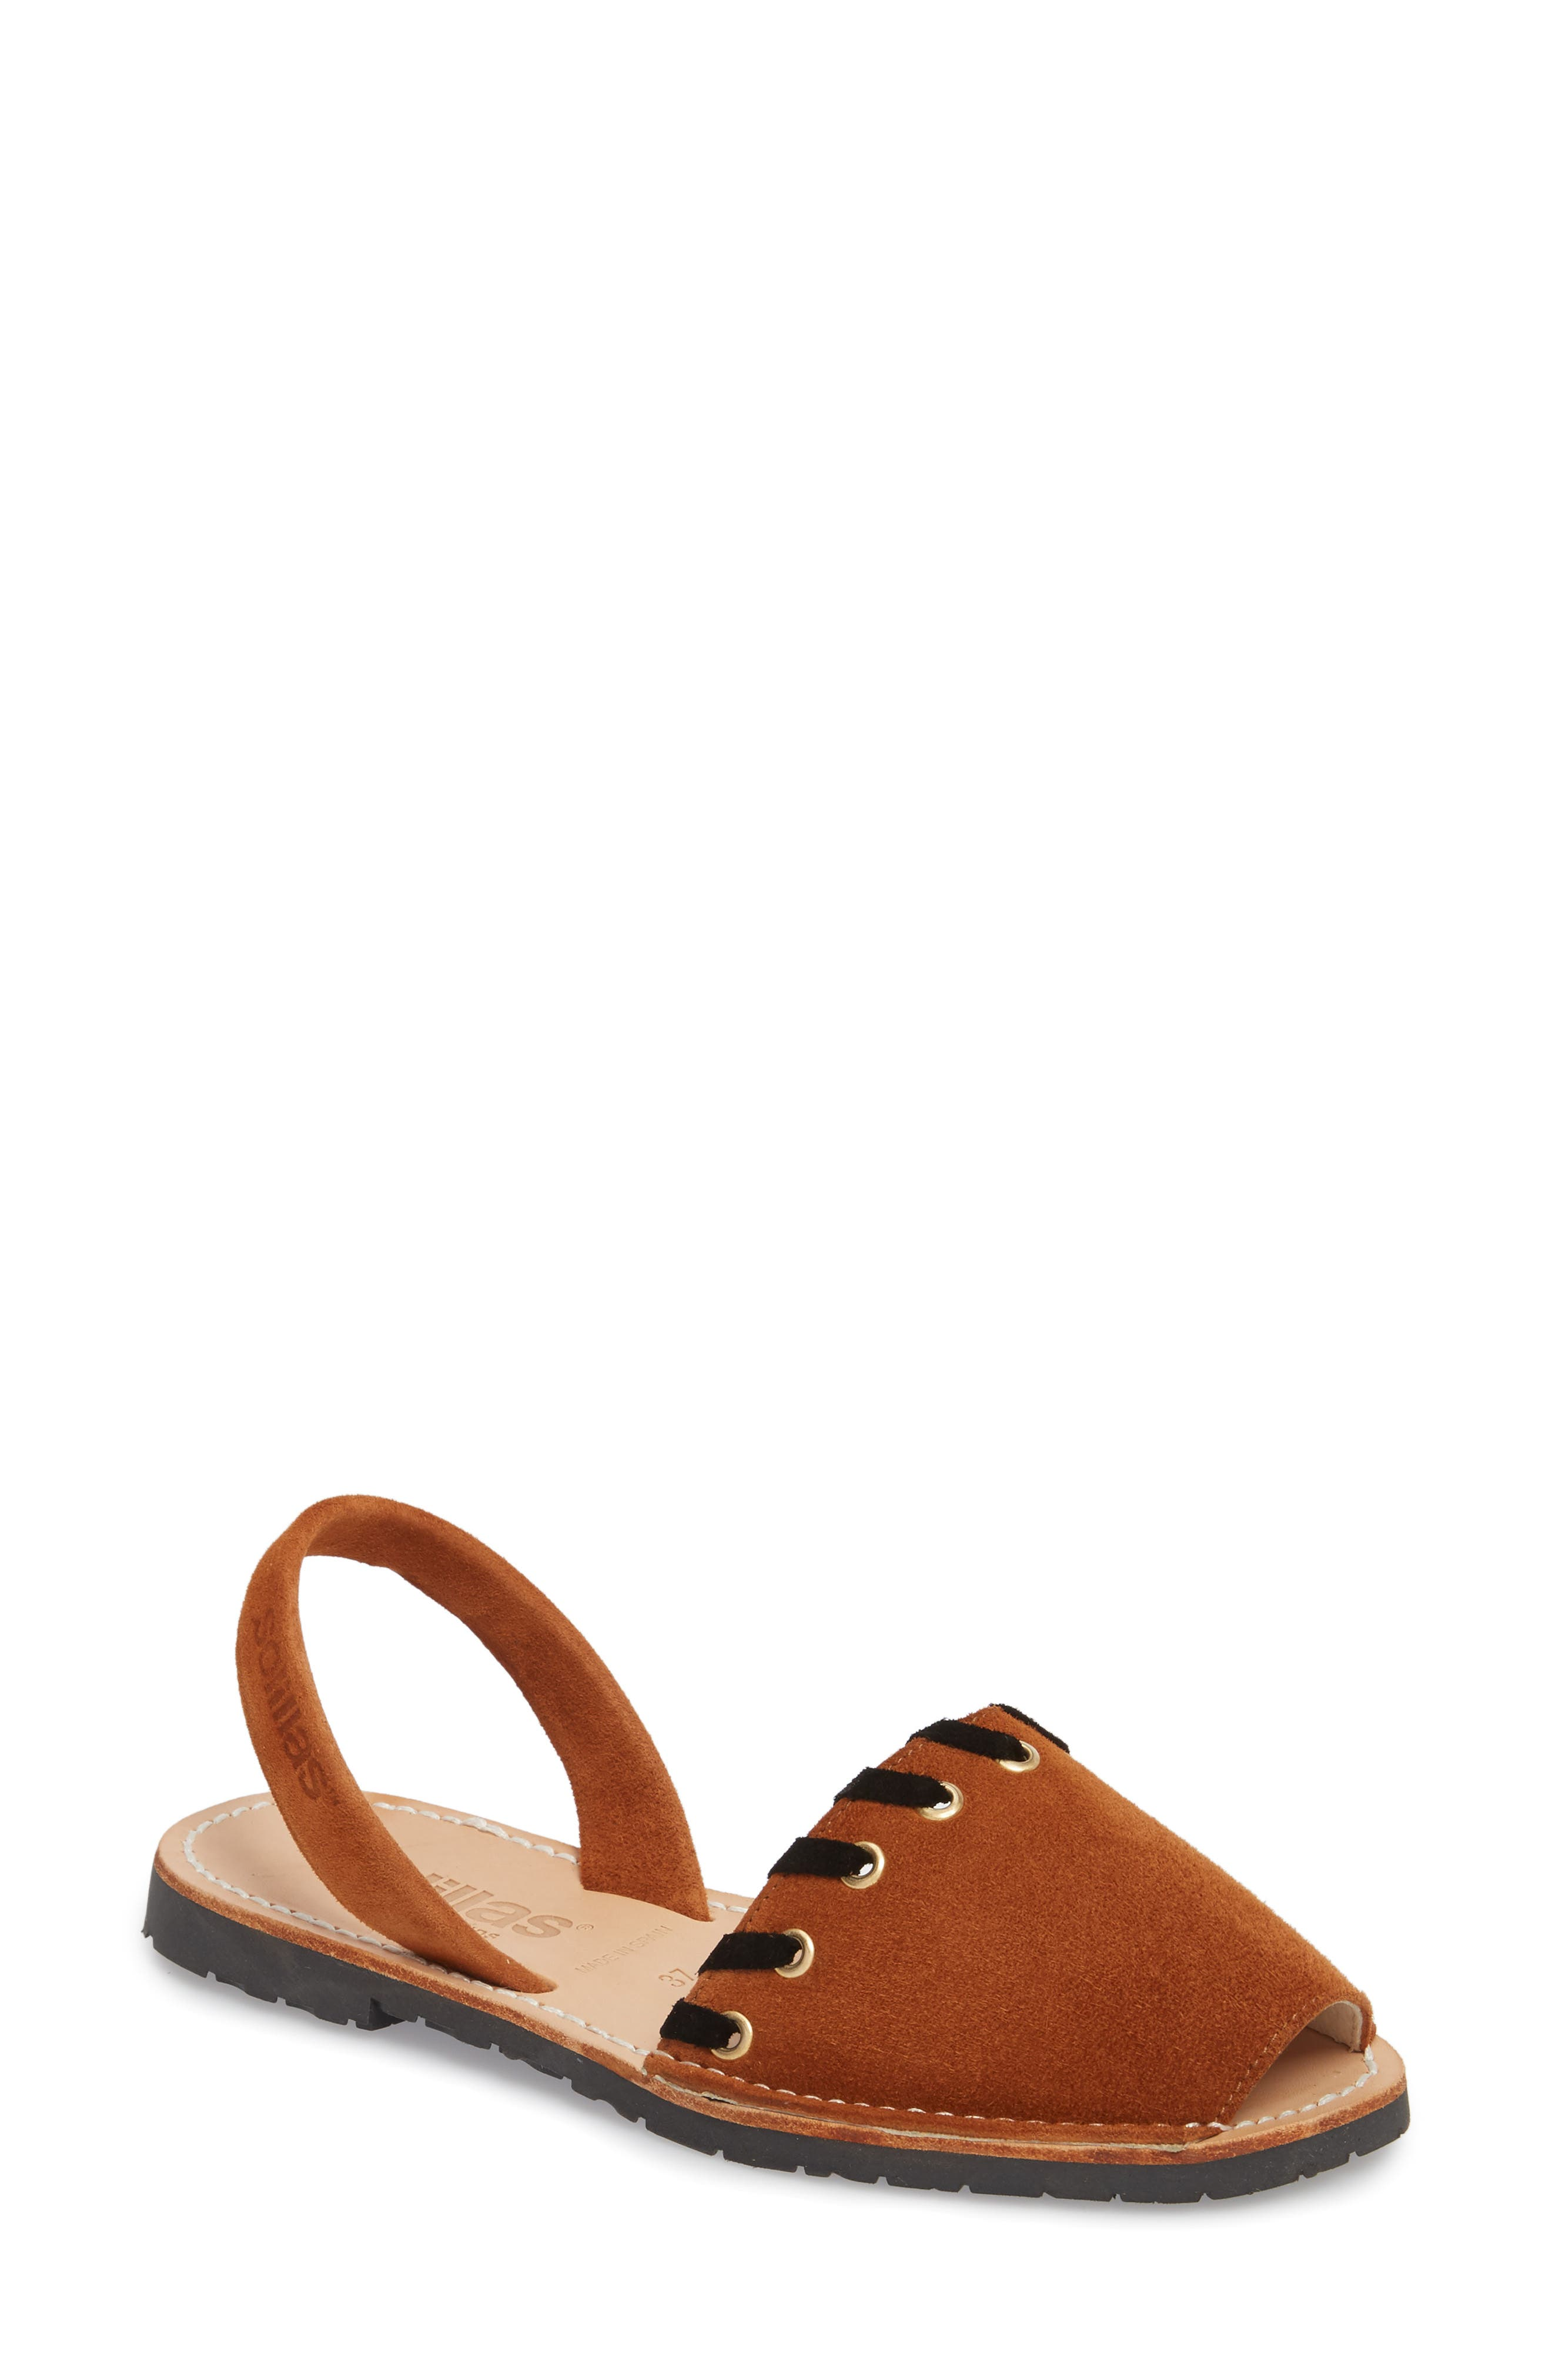 Whipstitched Flat Sandal,                             Main thumbnail 2, color,